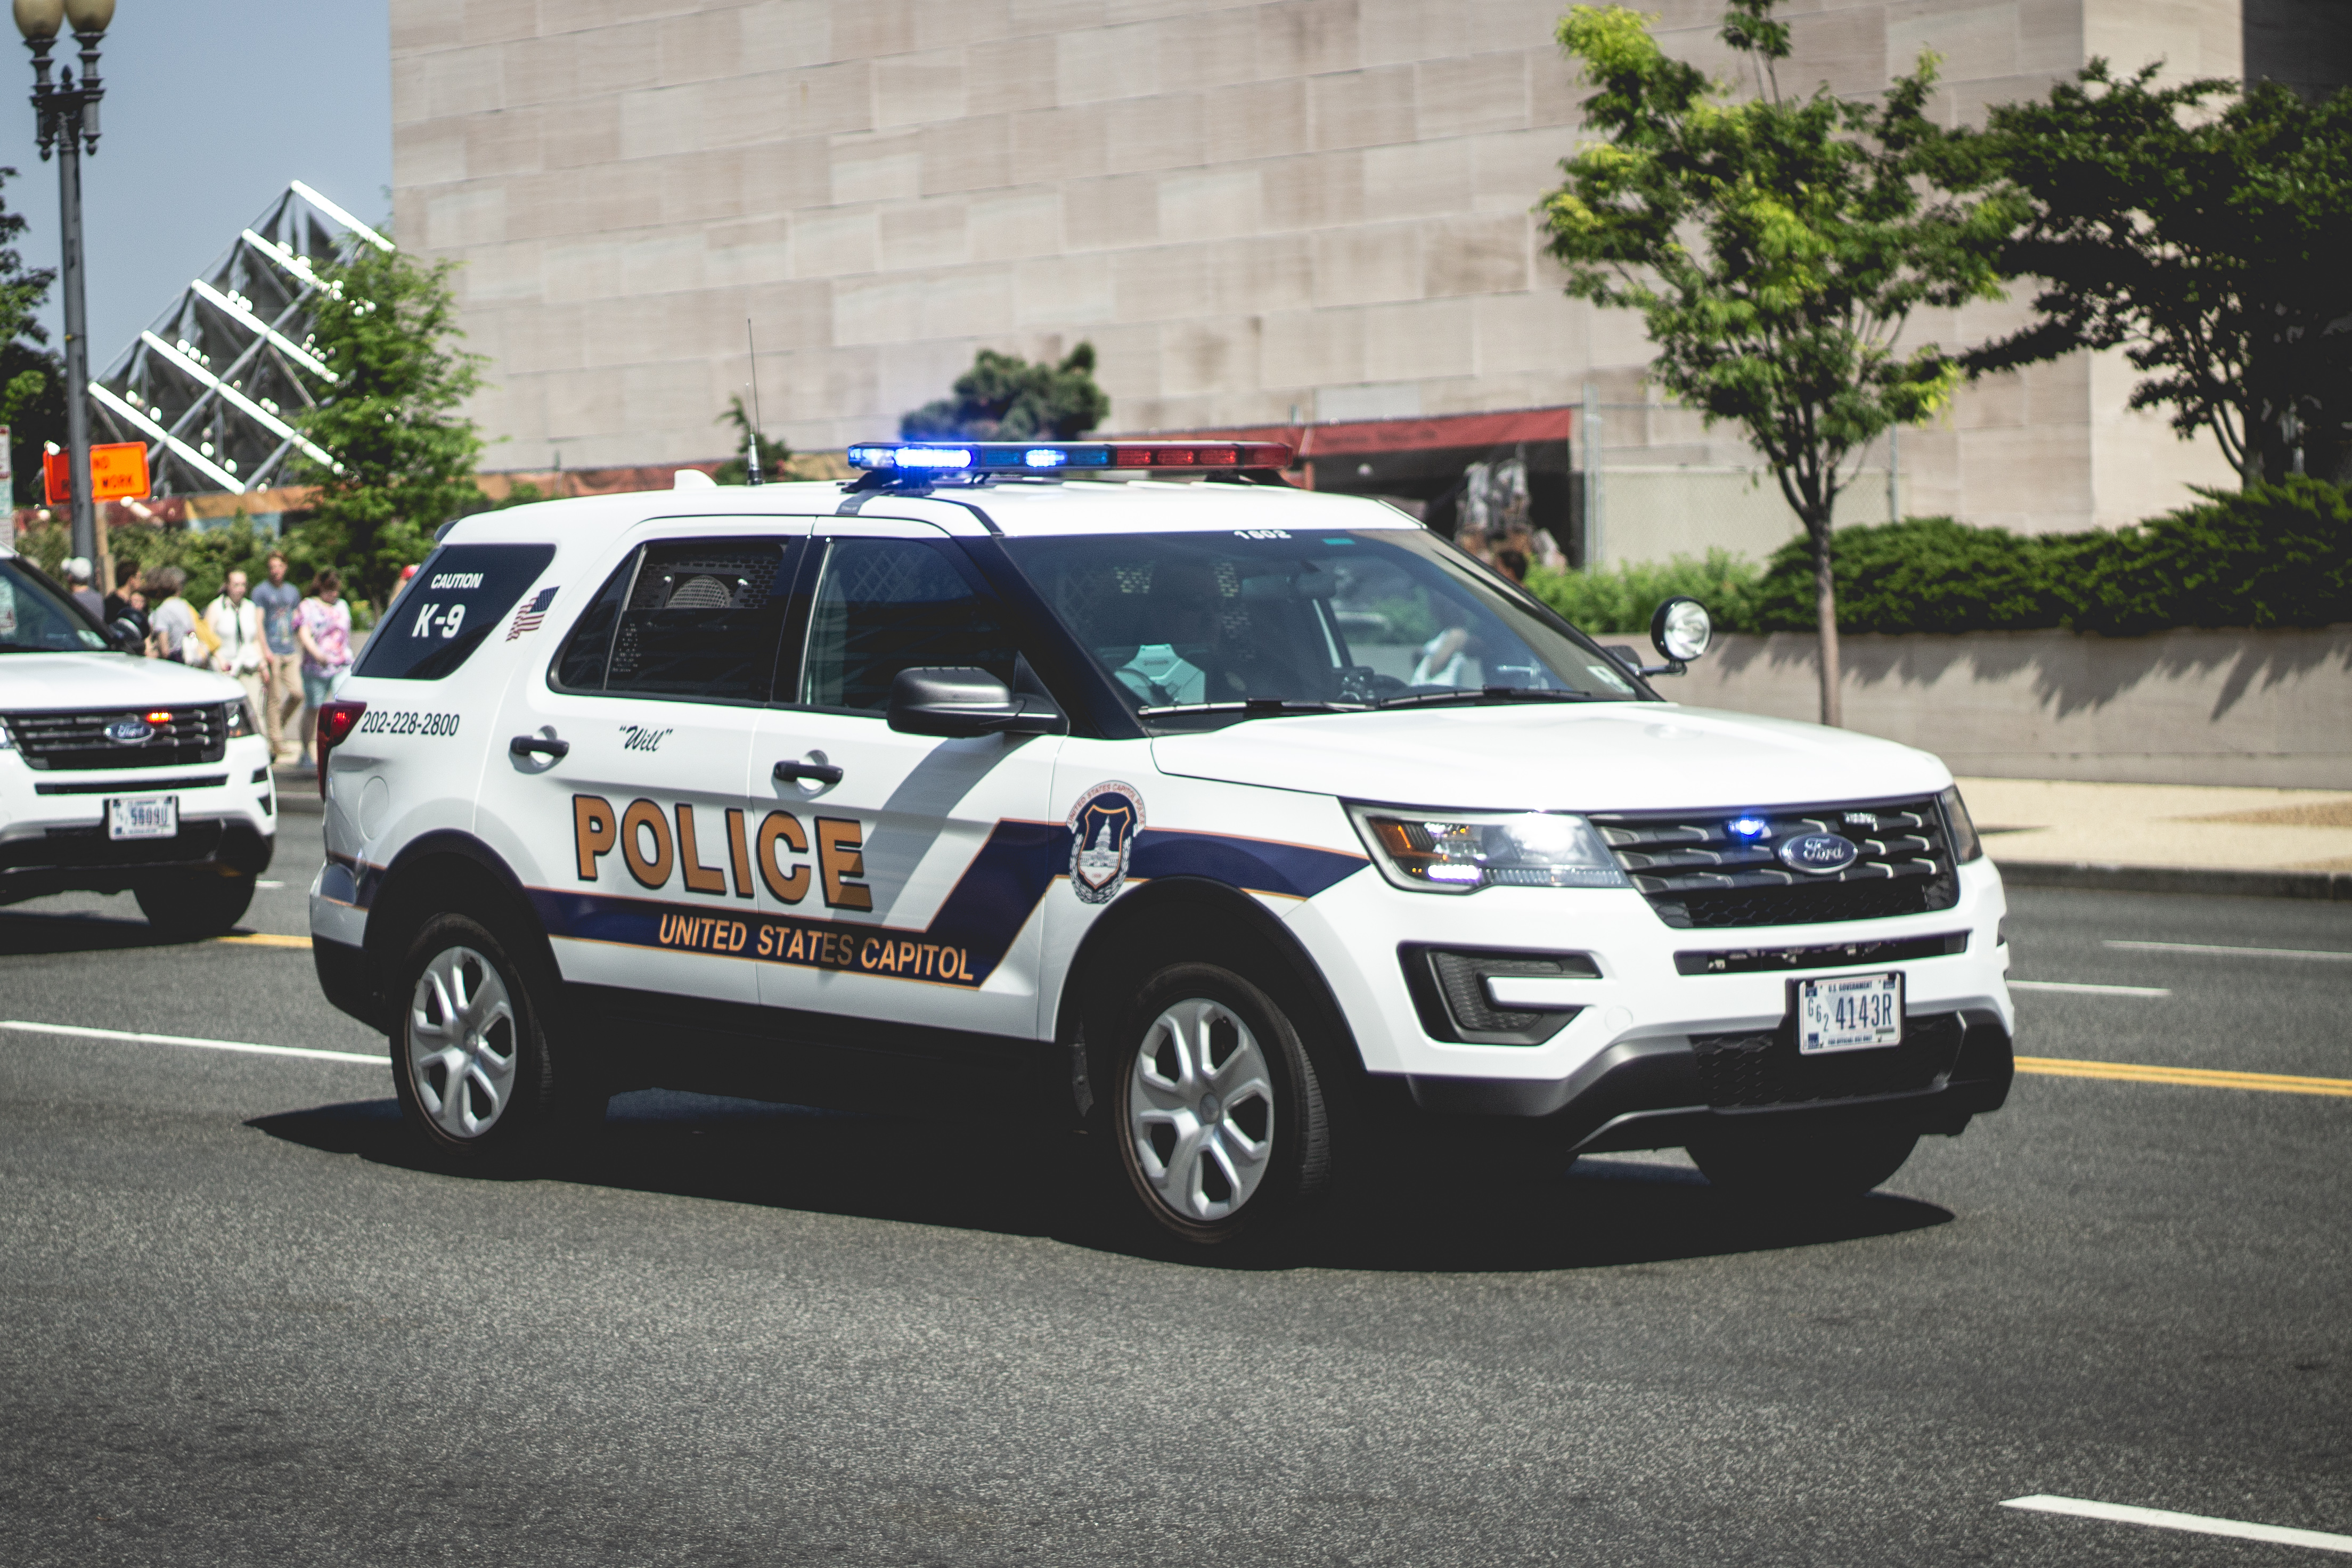 US Capitol Police (K9) - Ford Interceptor, Building, Police Washington DC, Washington DC Police, Washington dc, HQ Photo